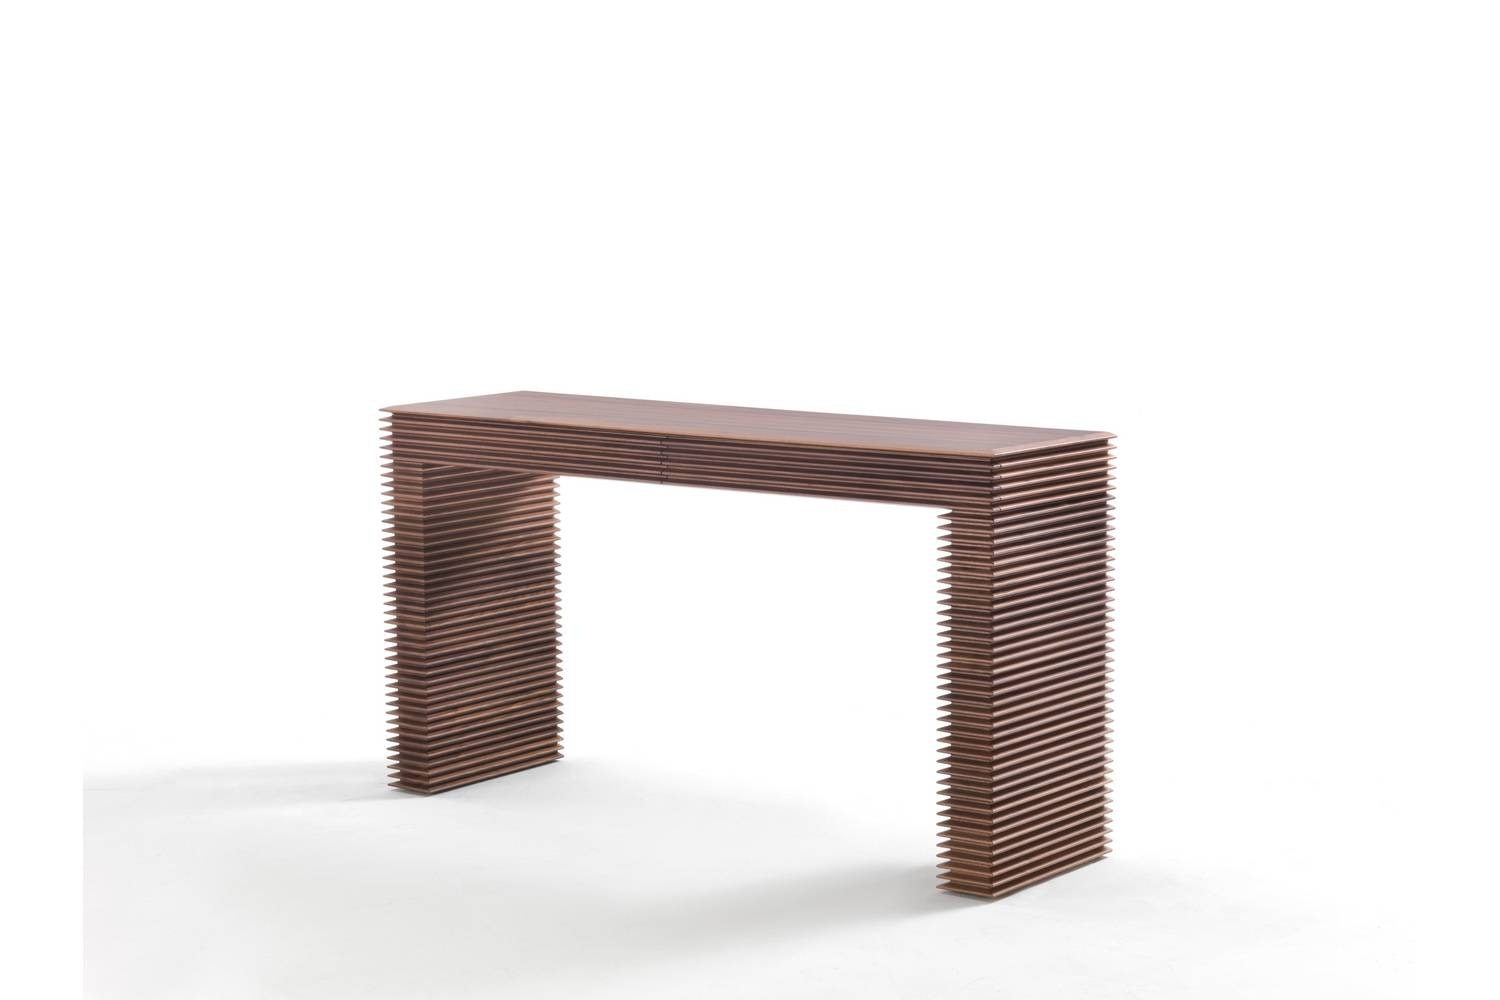 Linka Console Table by T. Colzani for Porada